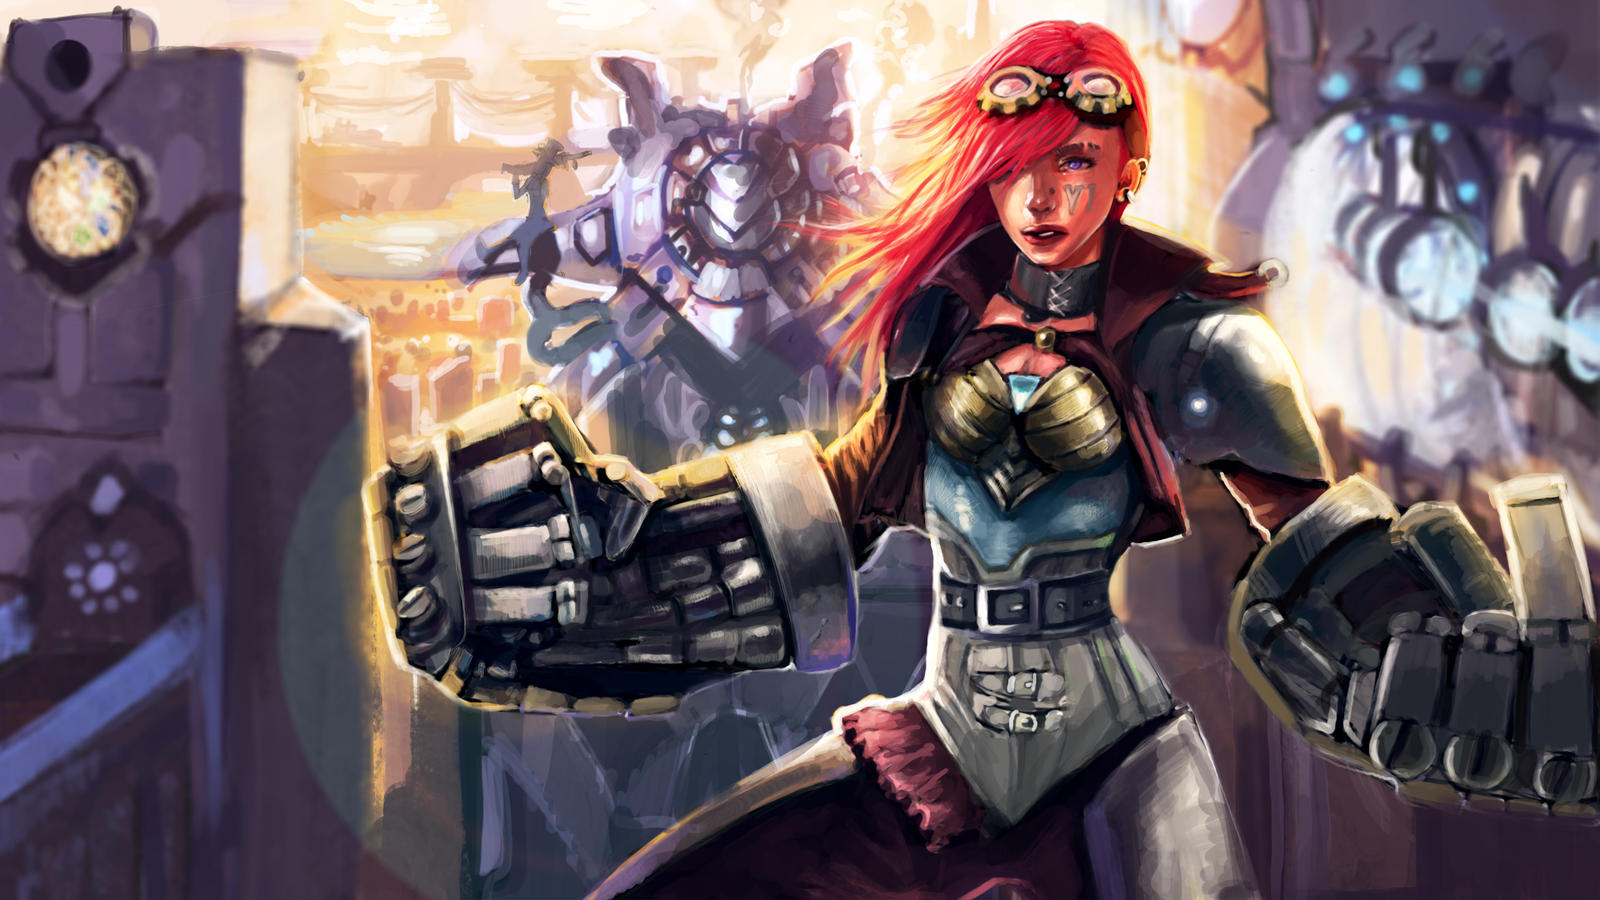 Vi- League of legends fanart by Dragonflamebg on DeviantArt